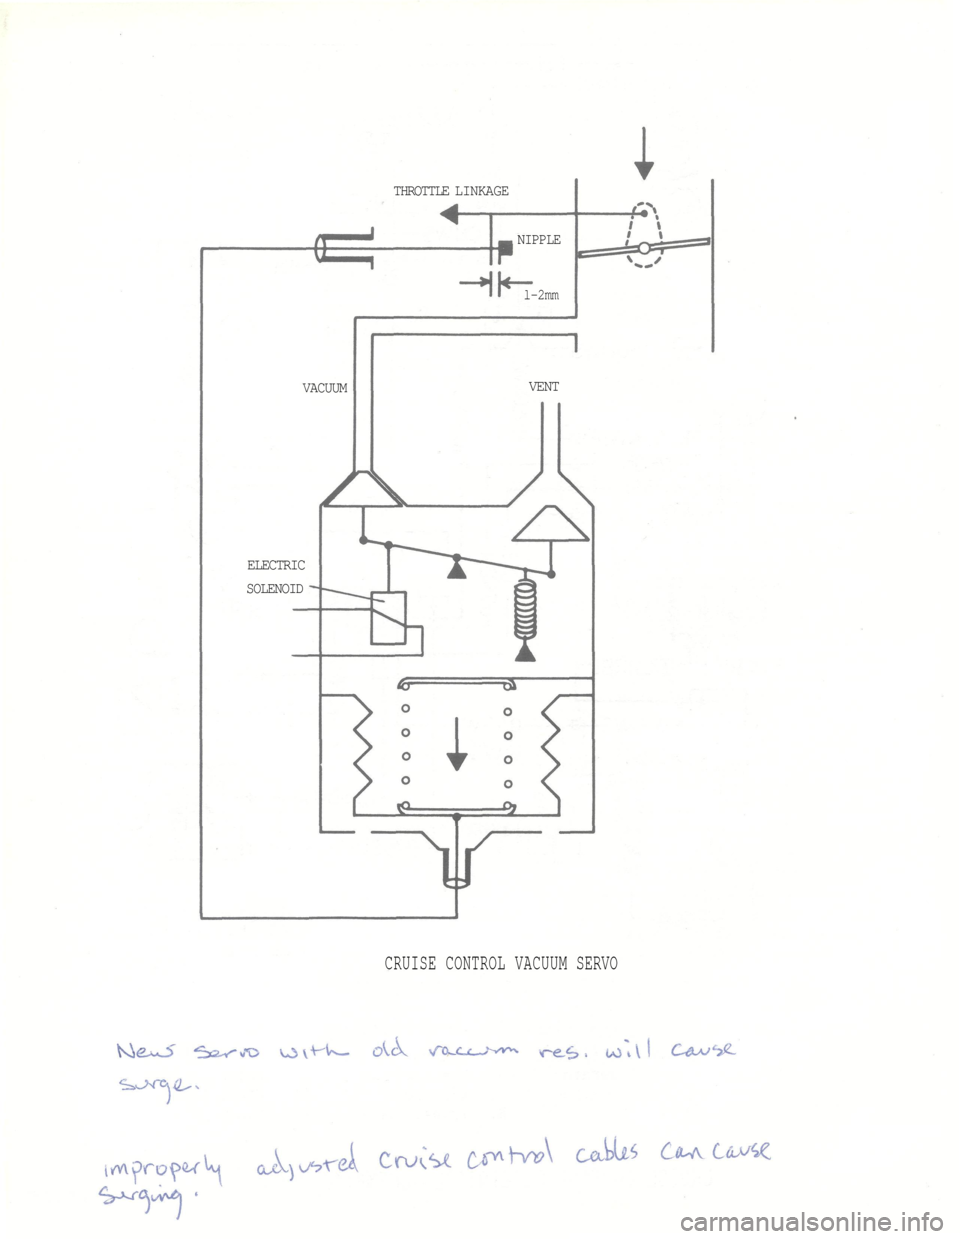 Porsche Cruise Control Diagram Bmw 5 Series 1987 E28 With Electric Acutator Page 14 Vacuum Servo